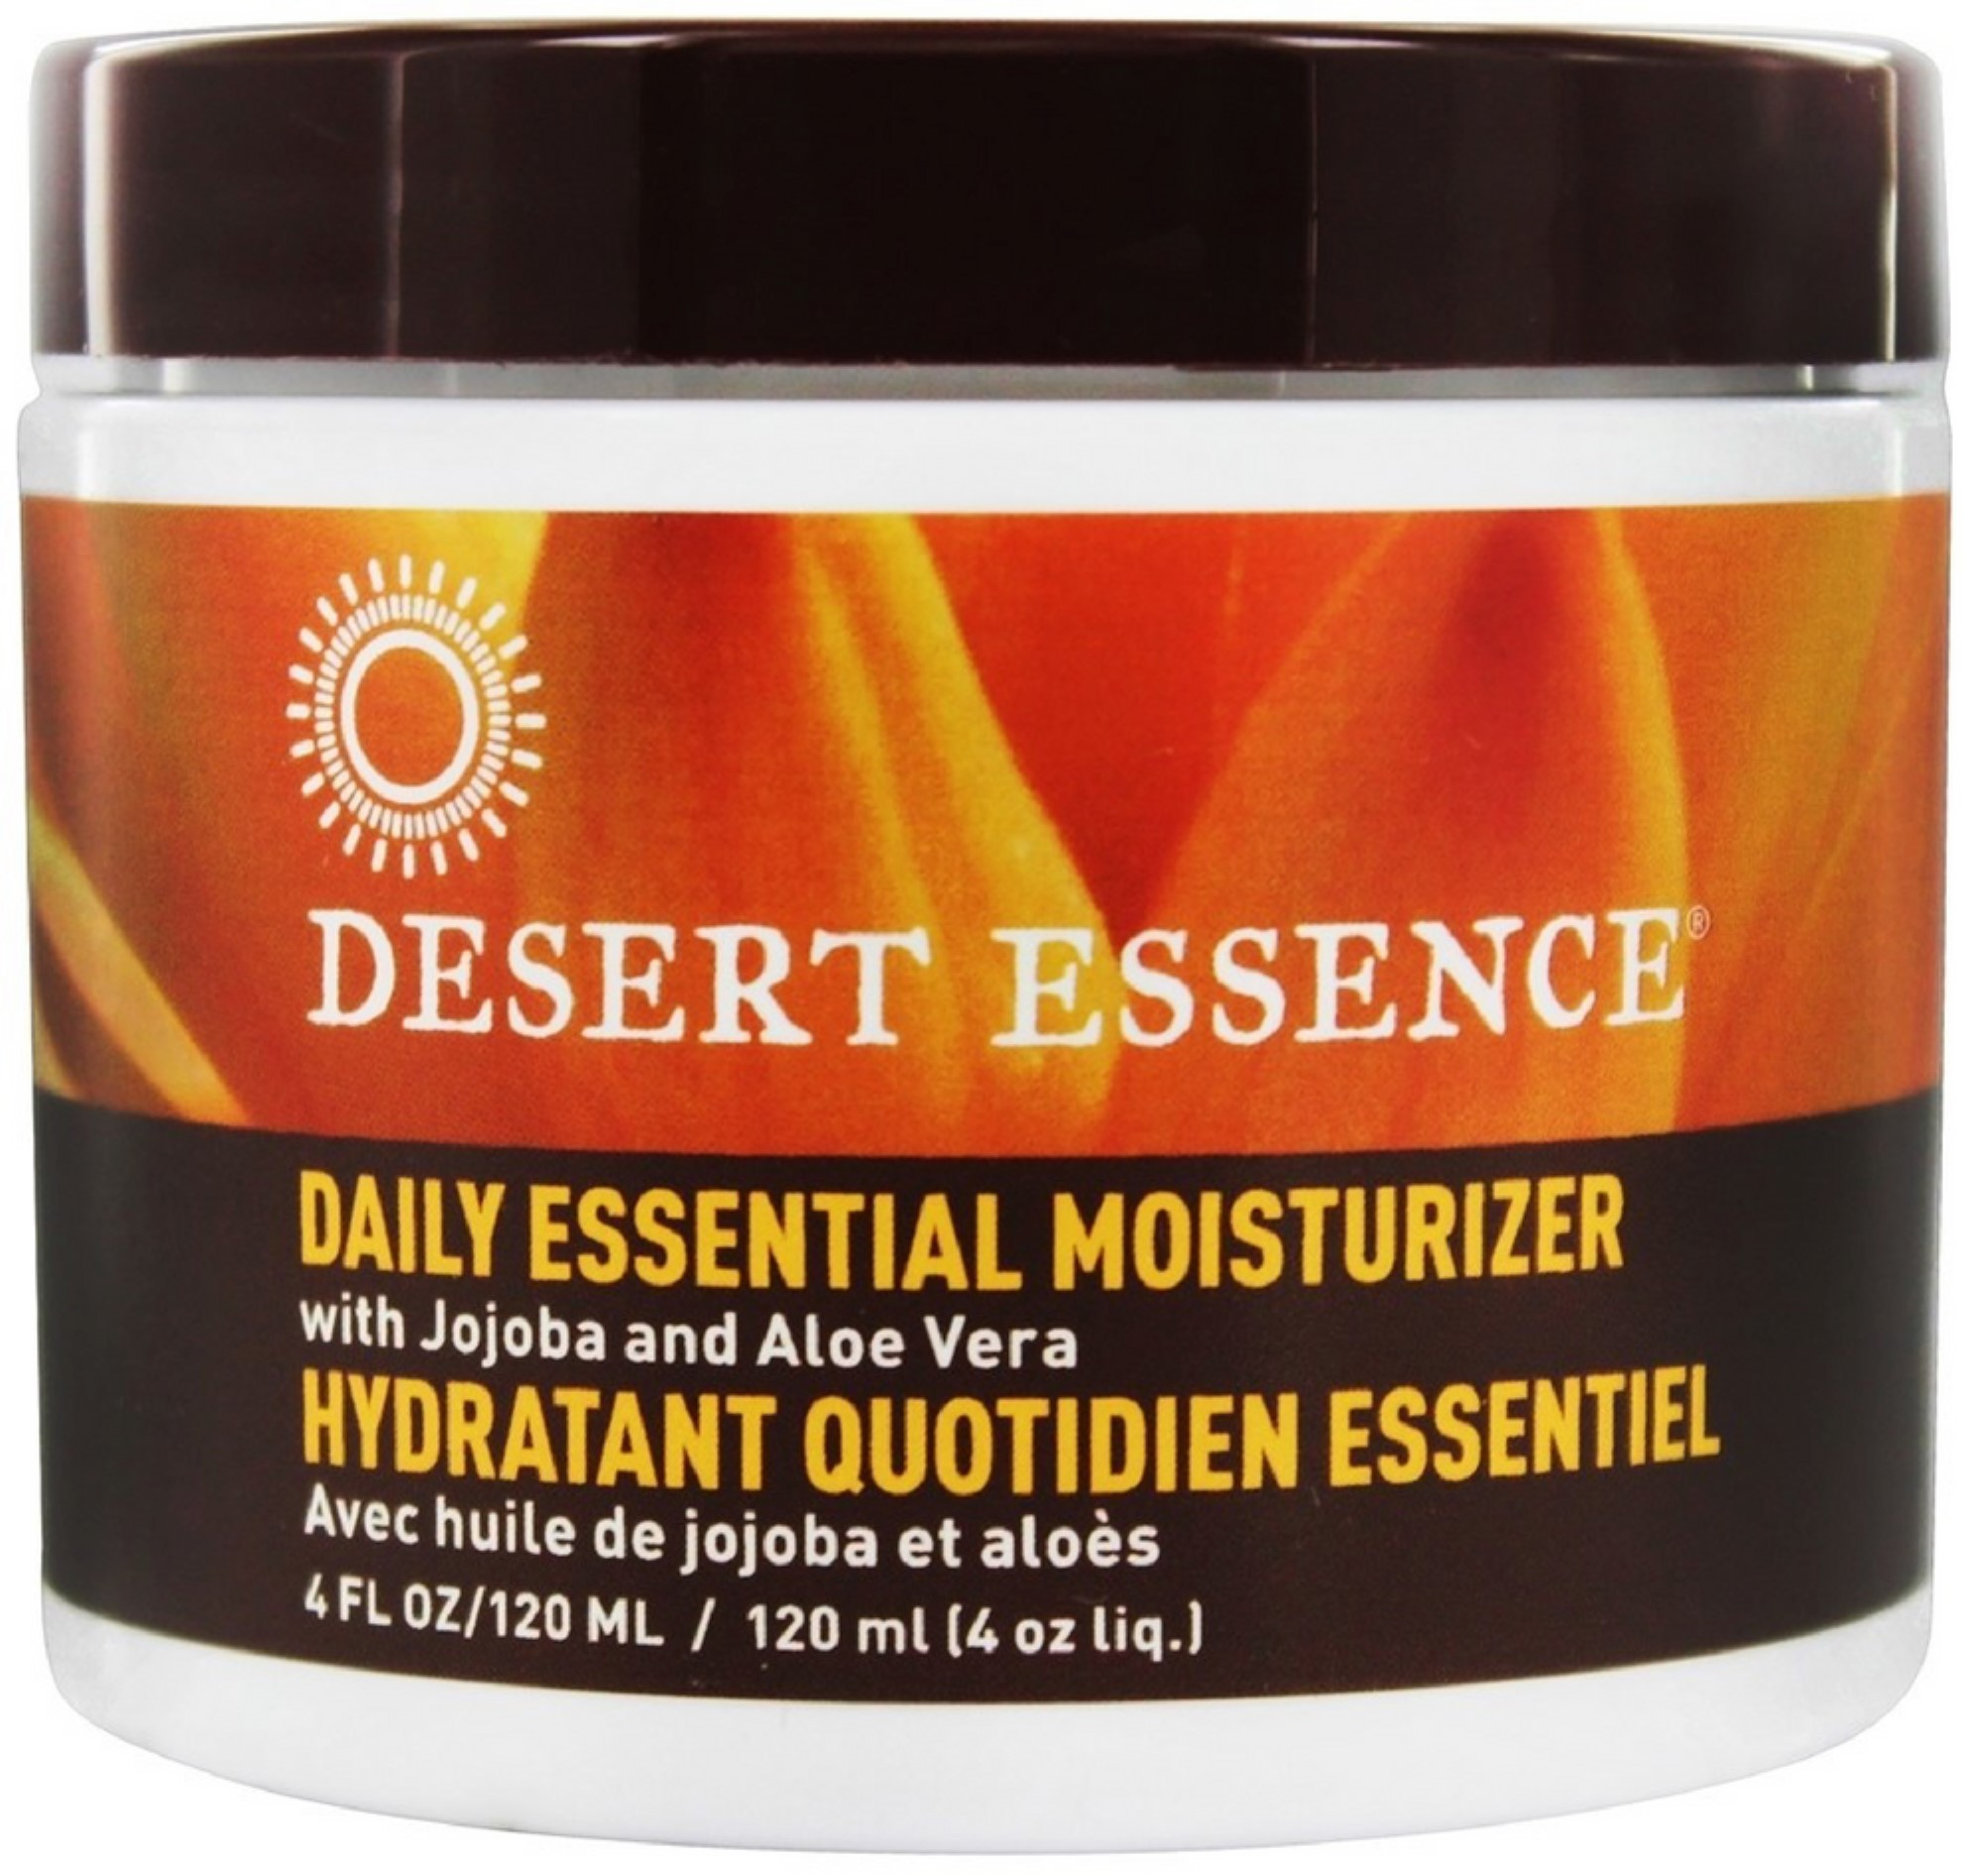 2 Pack - Desert Essence Daily Essential Moisturizer with Jojoba & Aloe Vera 4 oz